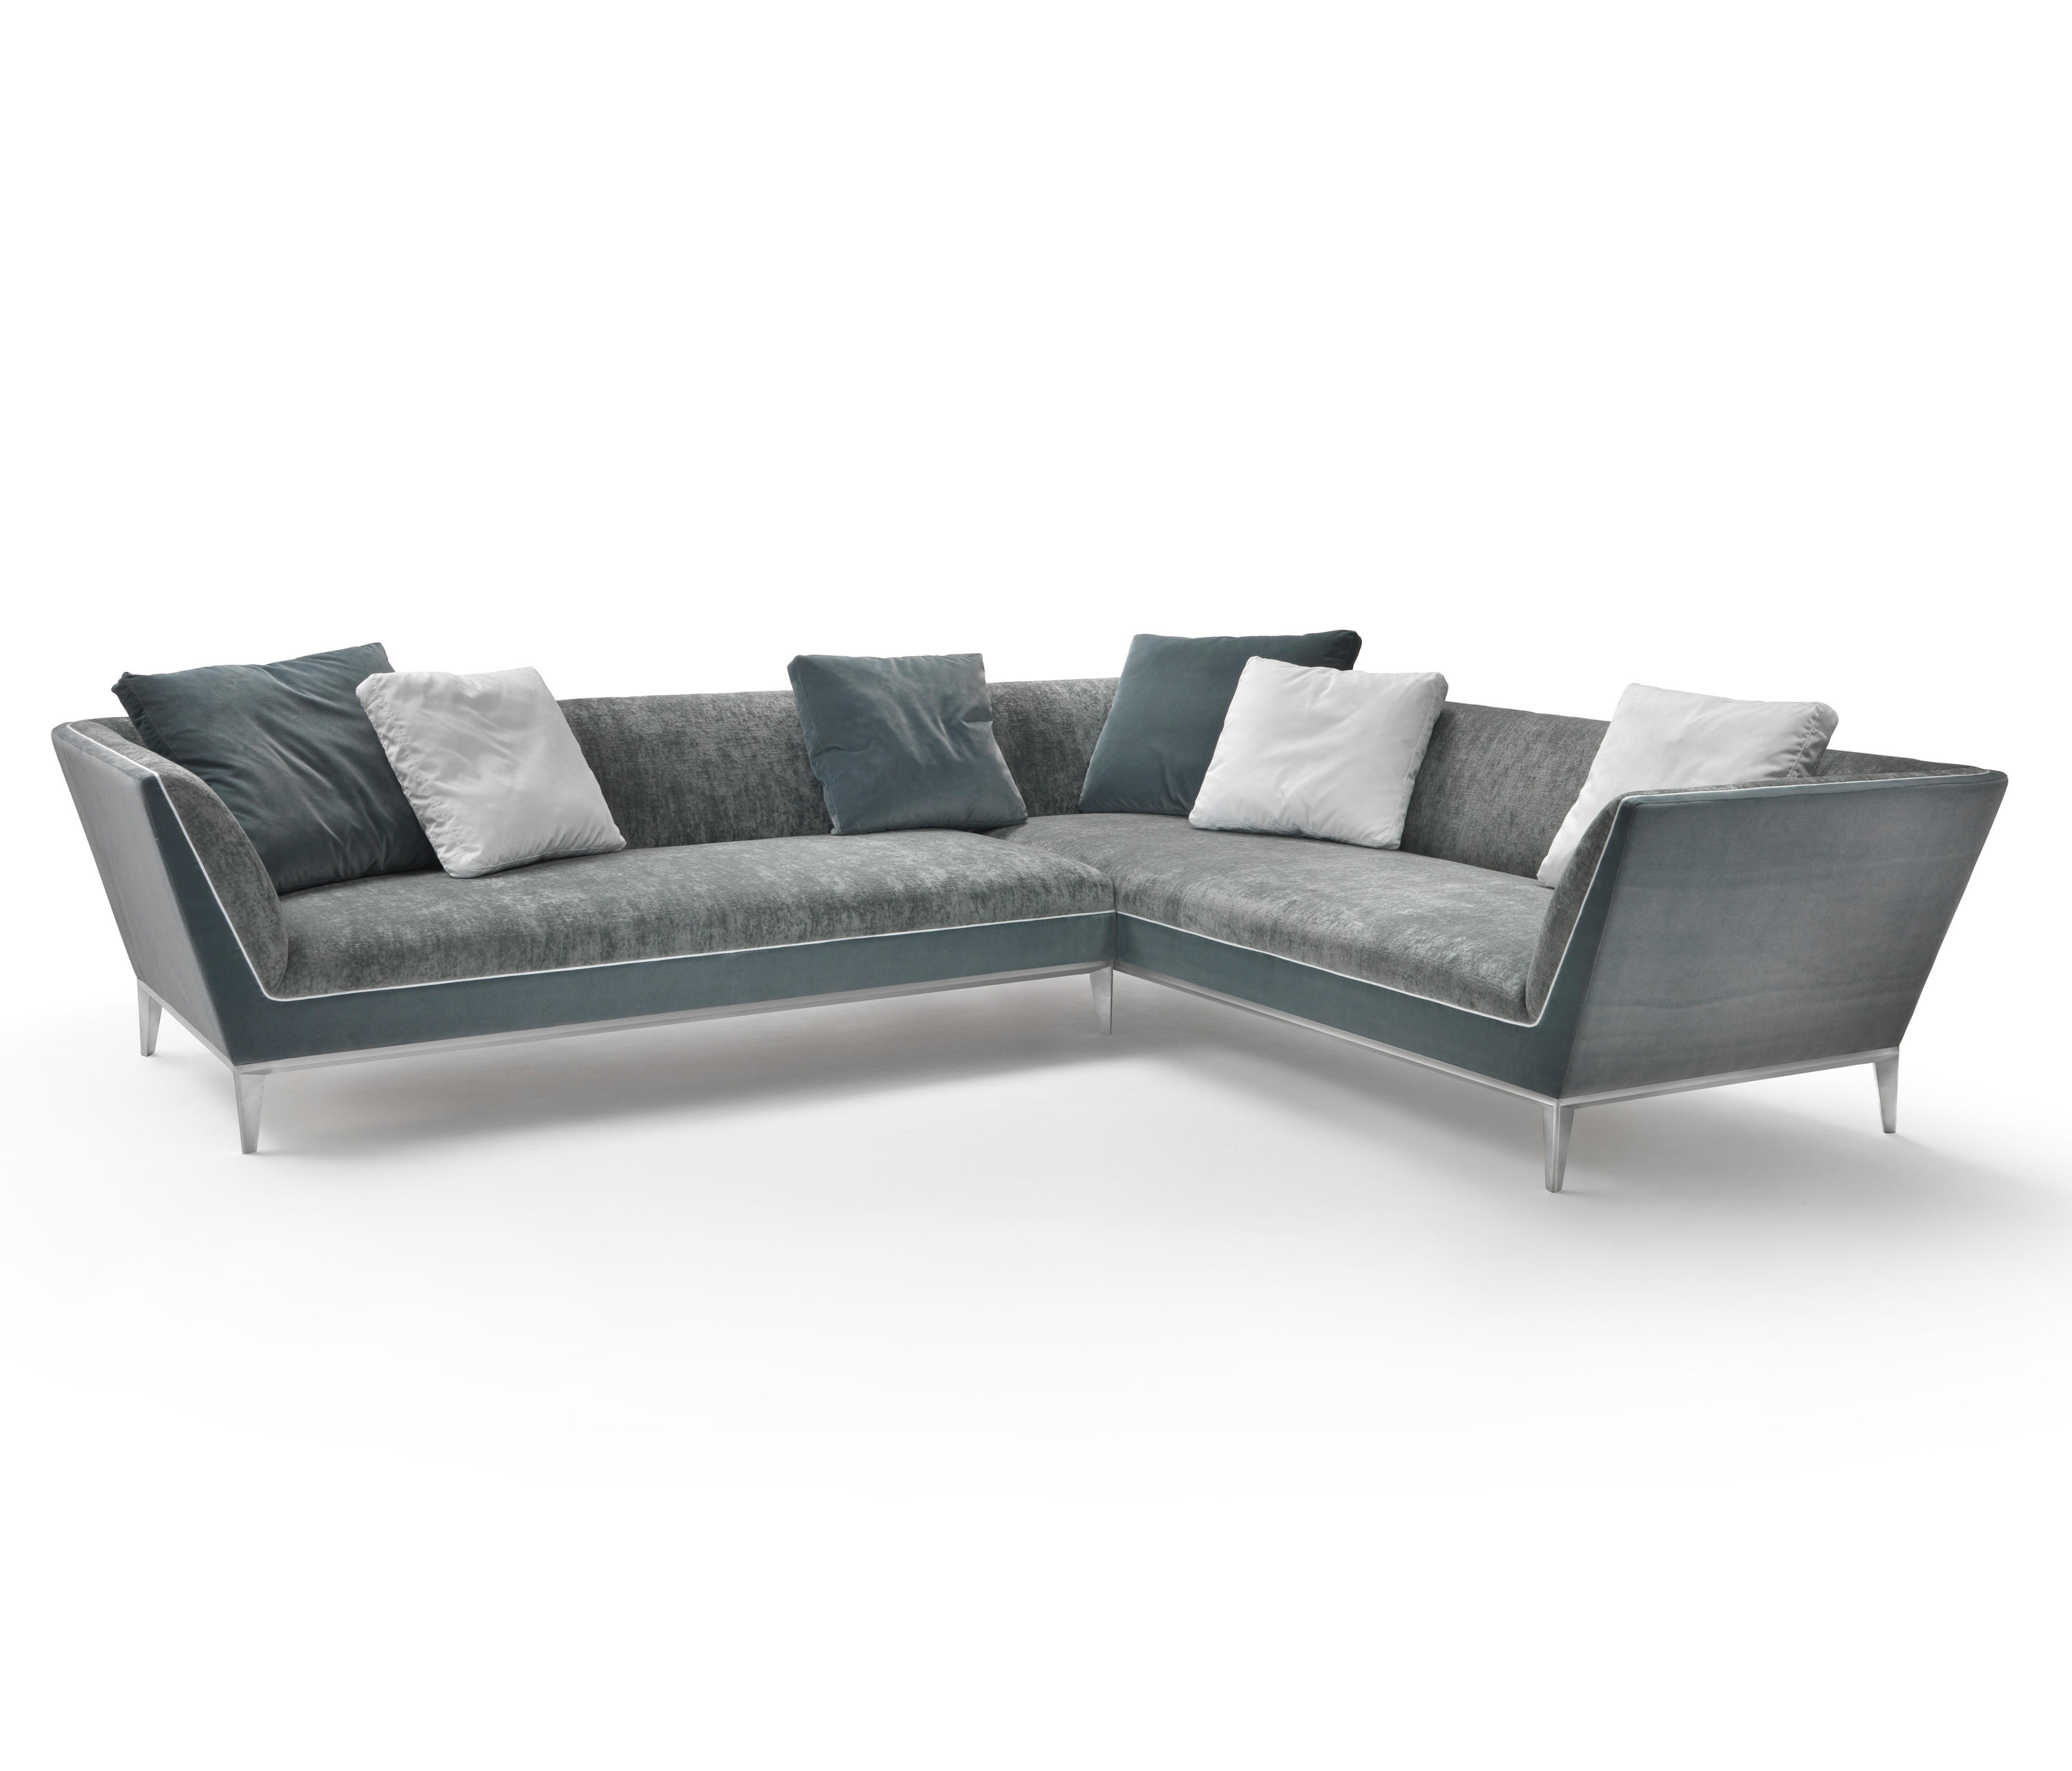 SOFAS SECTIONAL SOFAS Research and select Flexform Mood